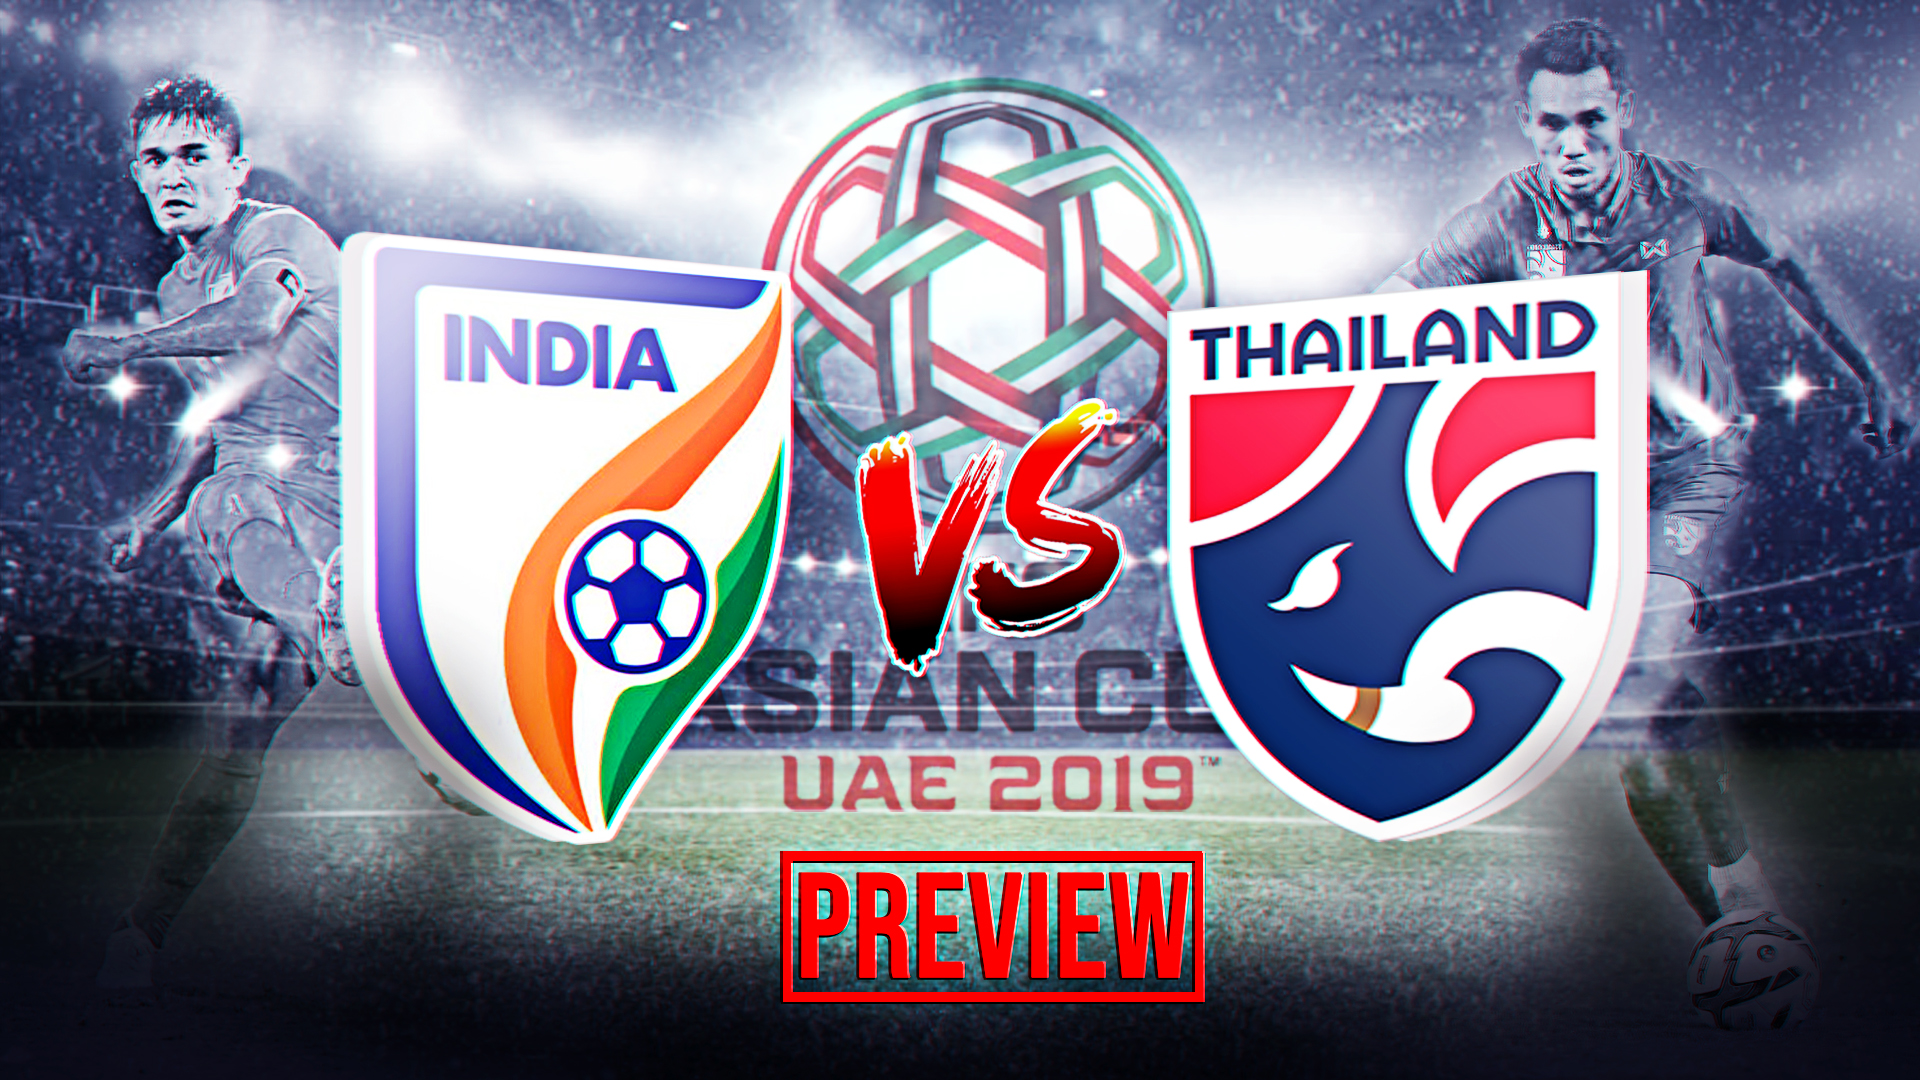 India vs Thailand AFC Asian Cup football